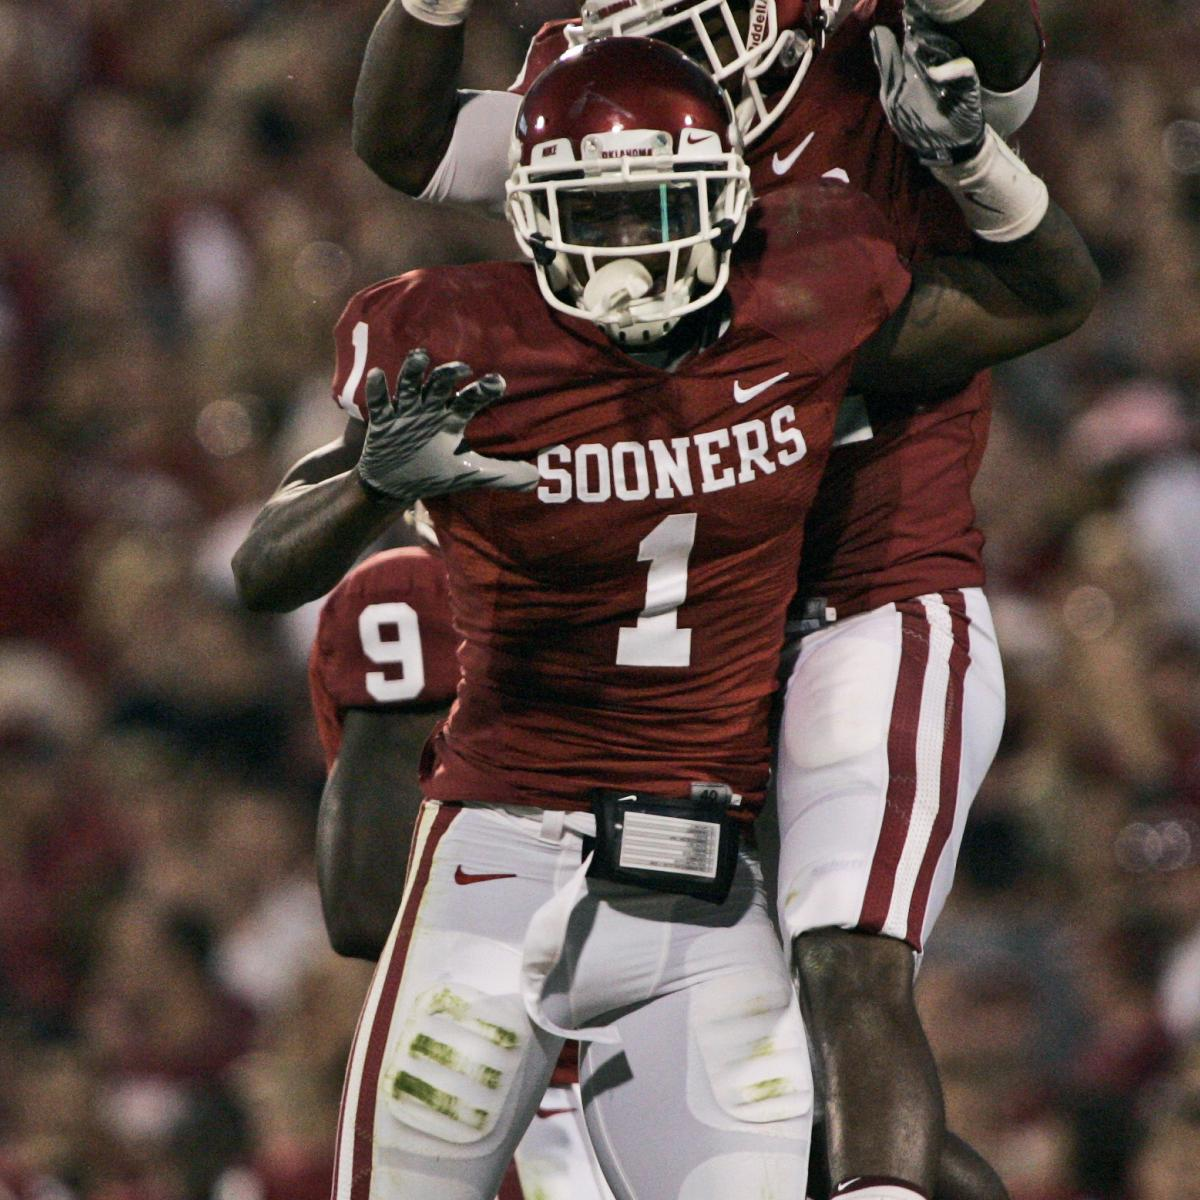 Oklahoma Football: What You Need to Know About Sooners' FS ...